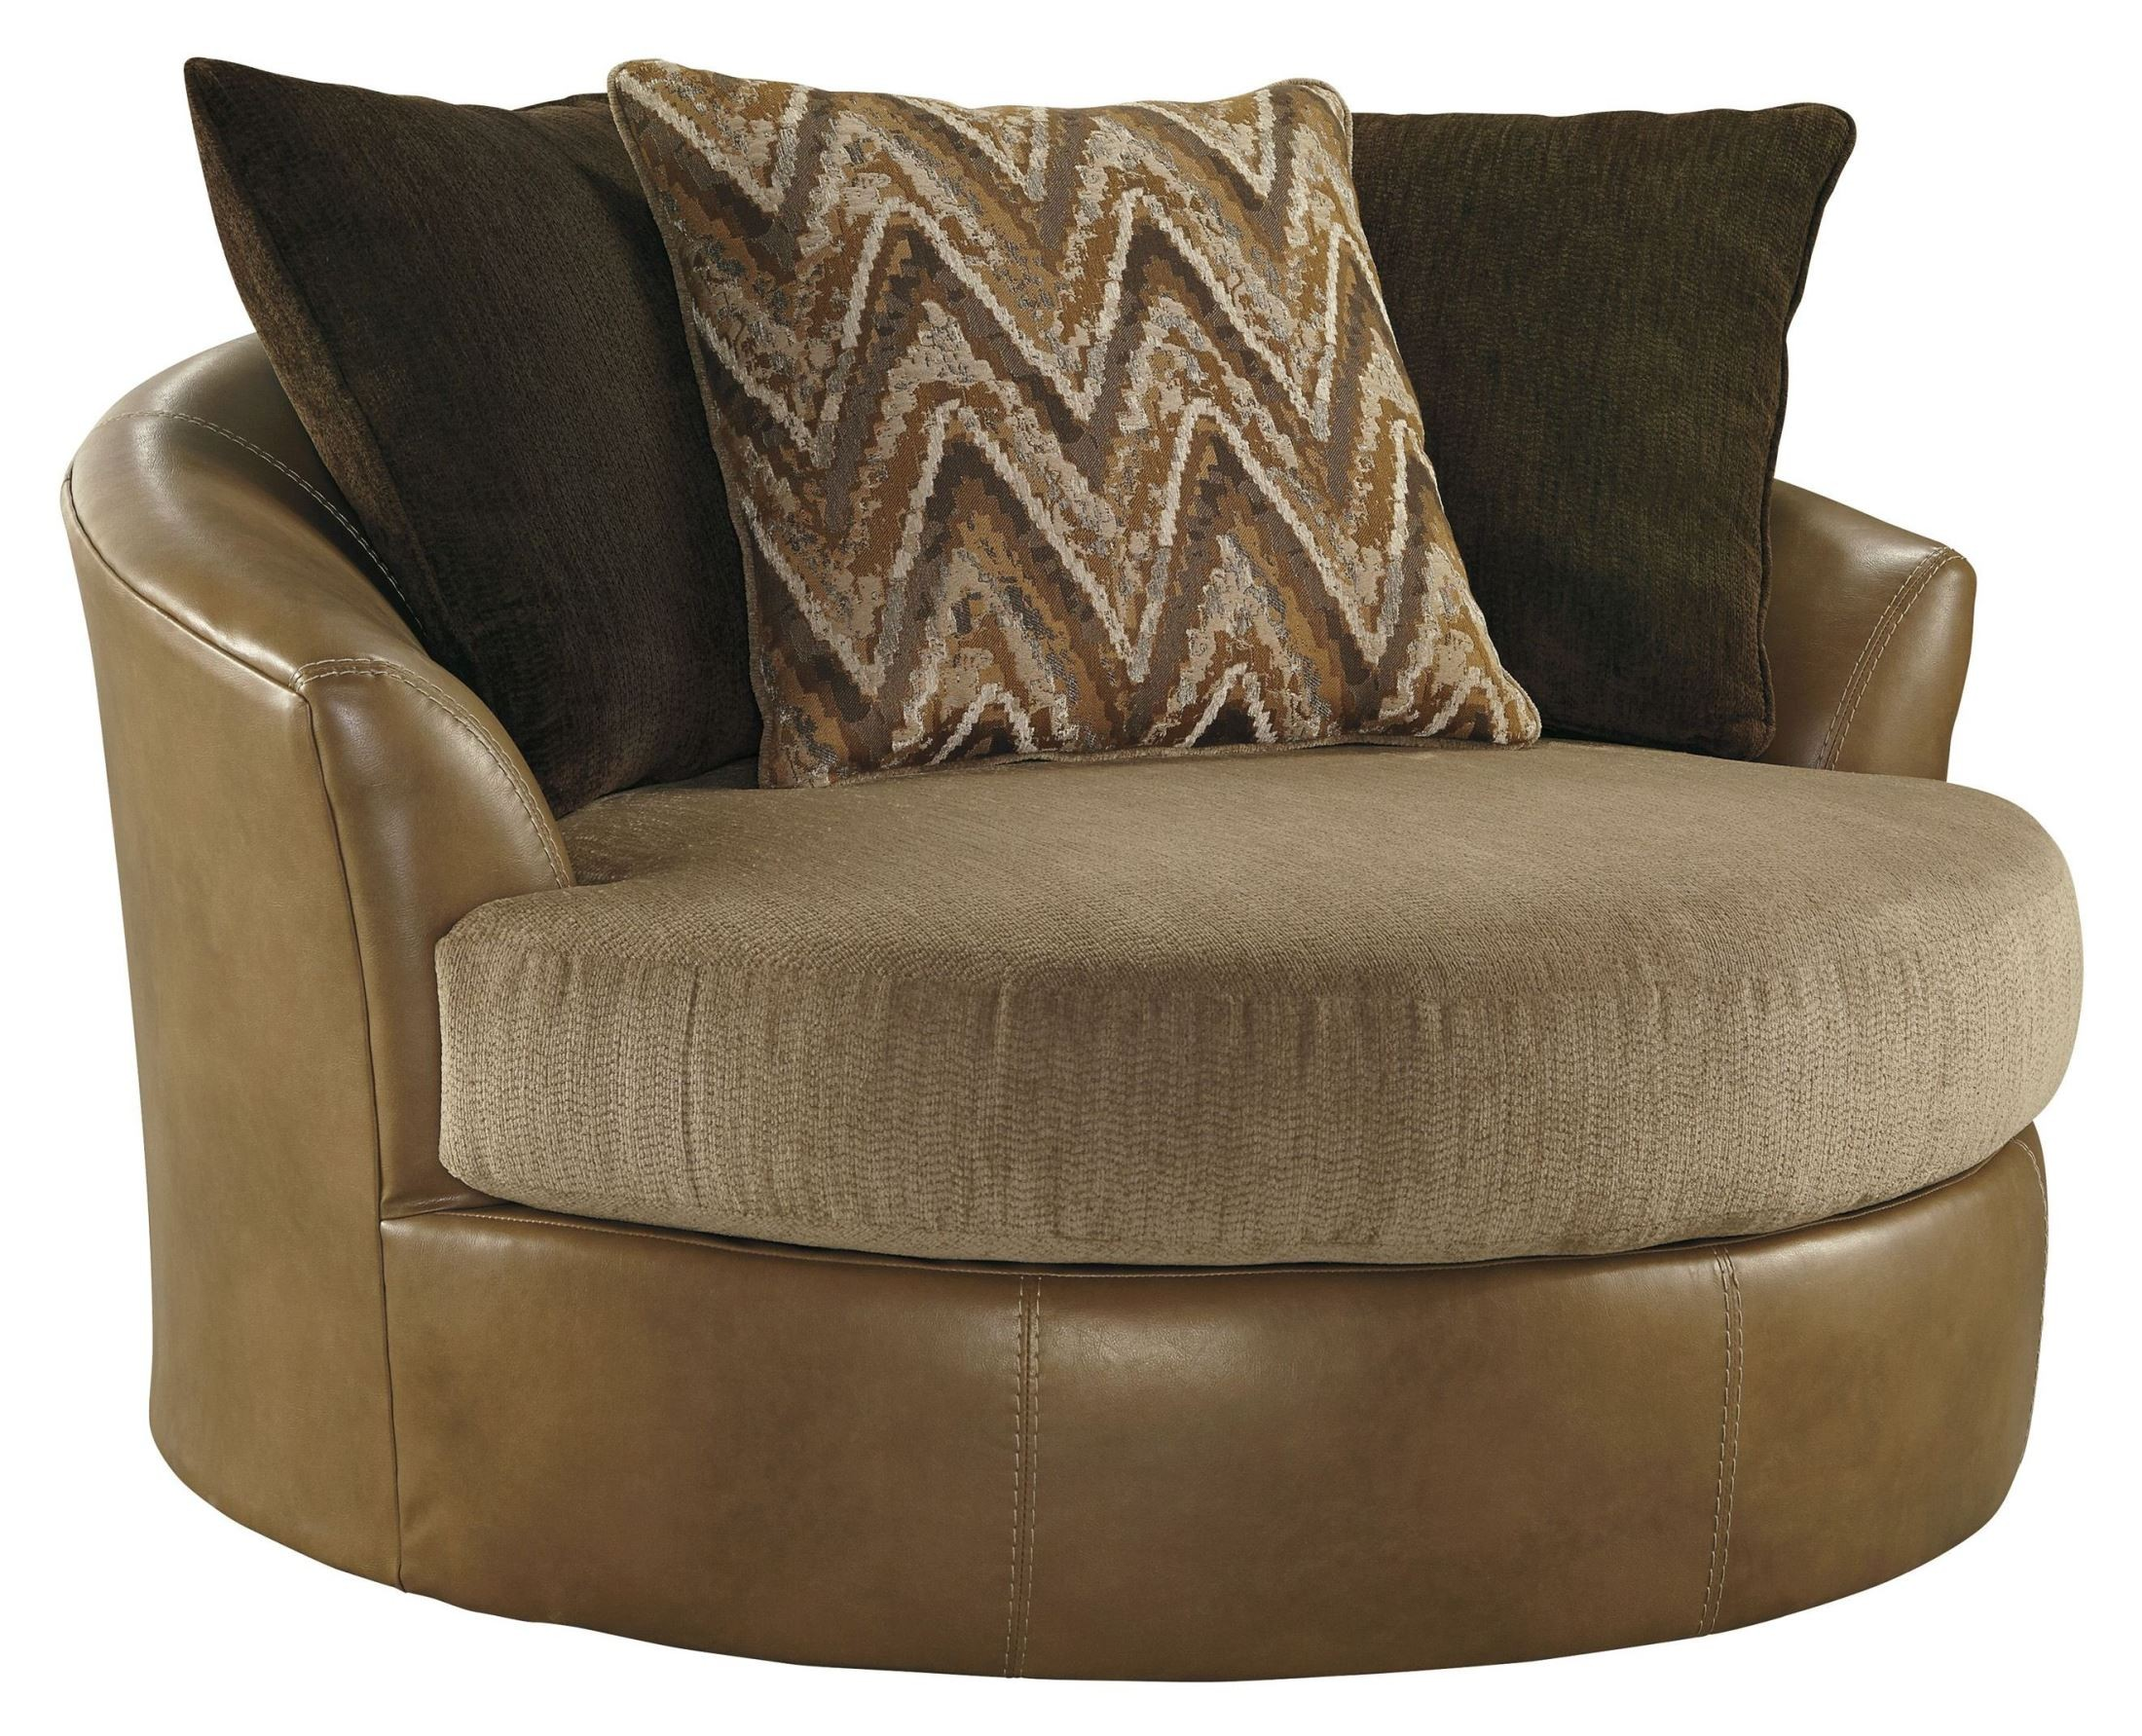 Oversized Accent Chair Declain Sand Oversized Swivel Accent Chair From Ashley